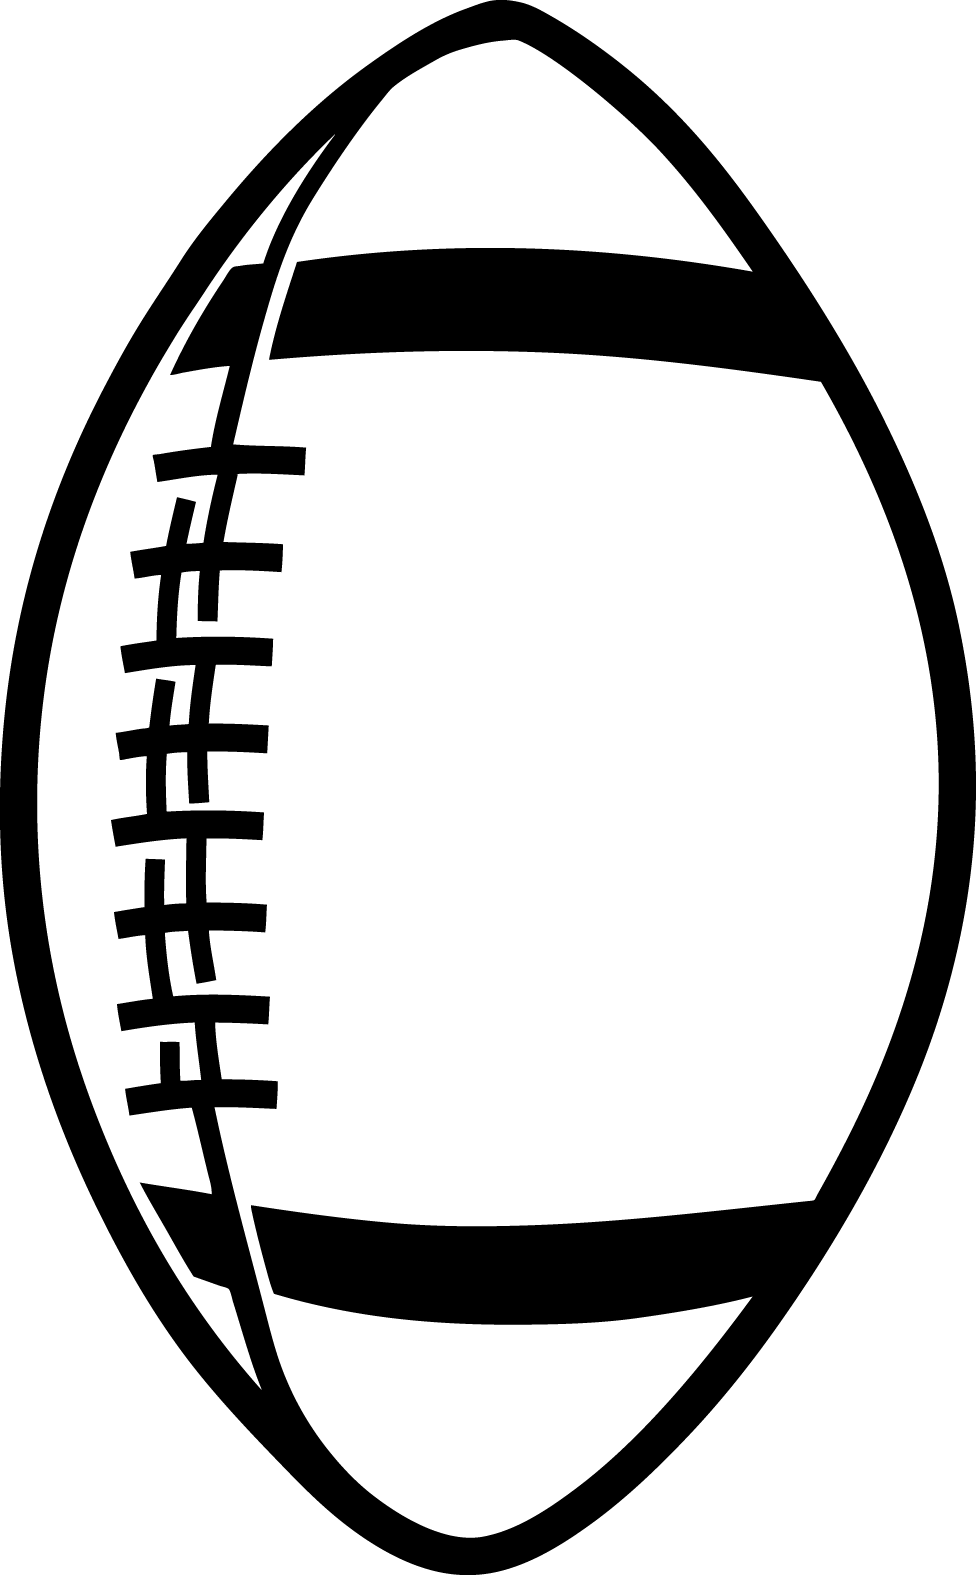 football%20helmet%20clipart%20black%20and%20white